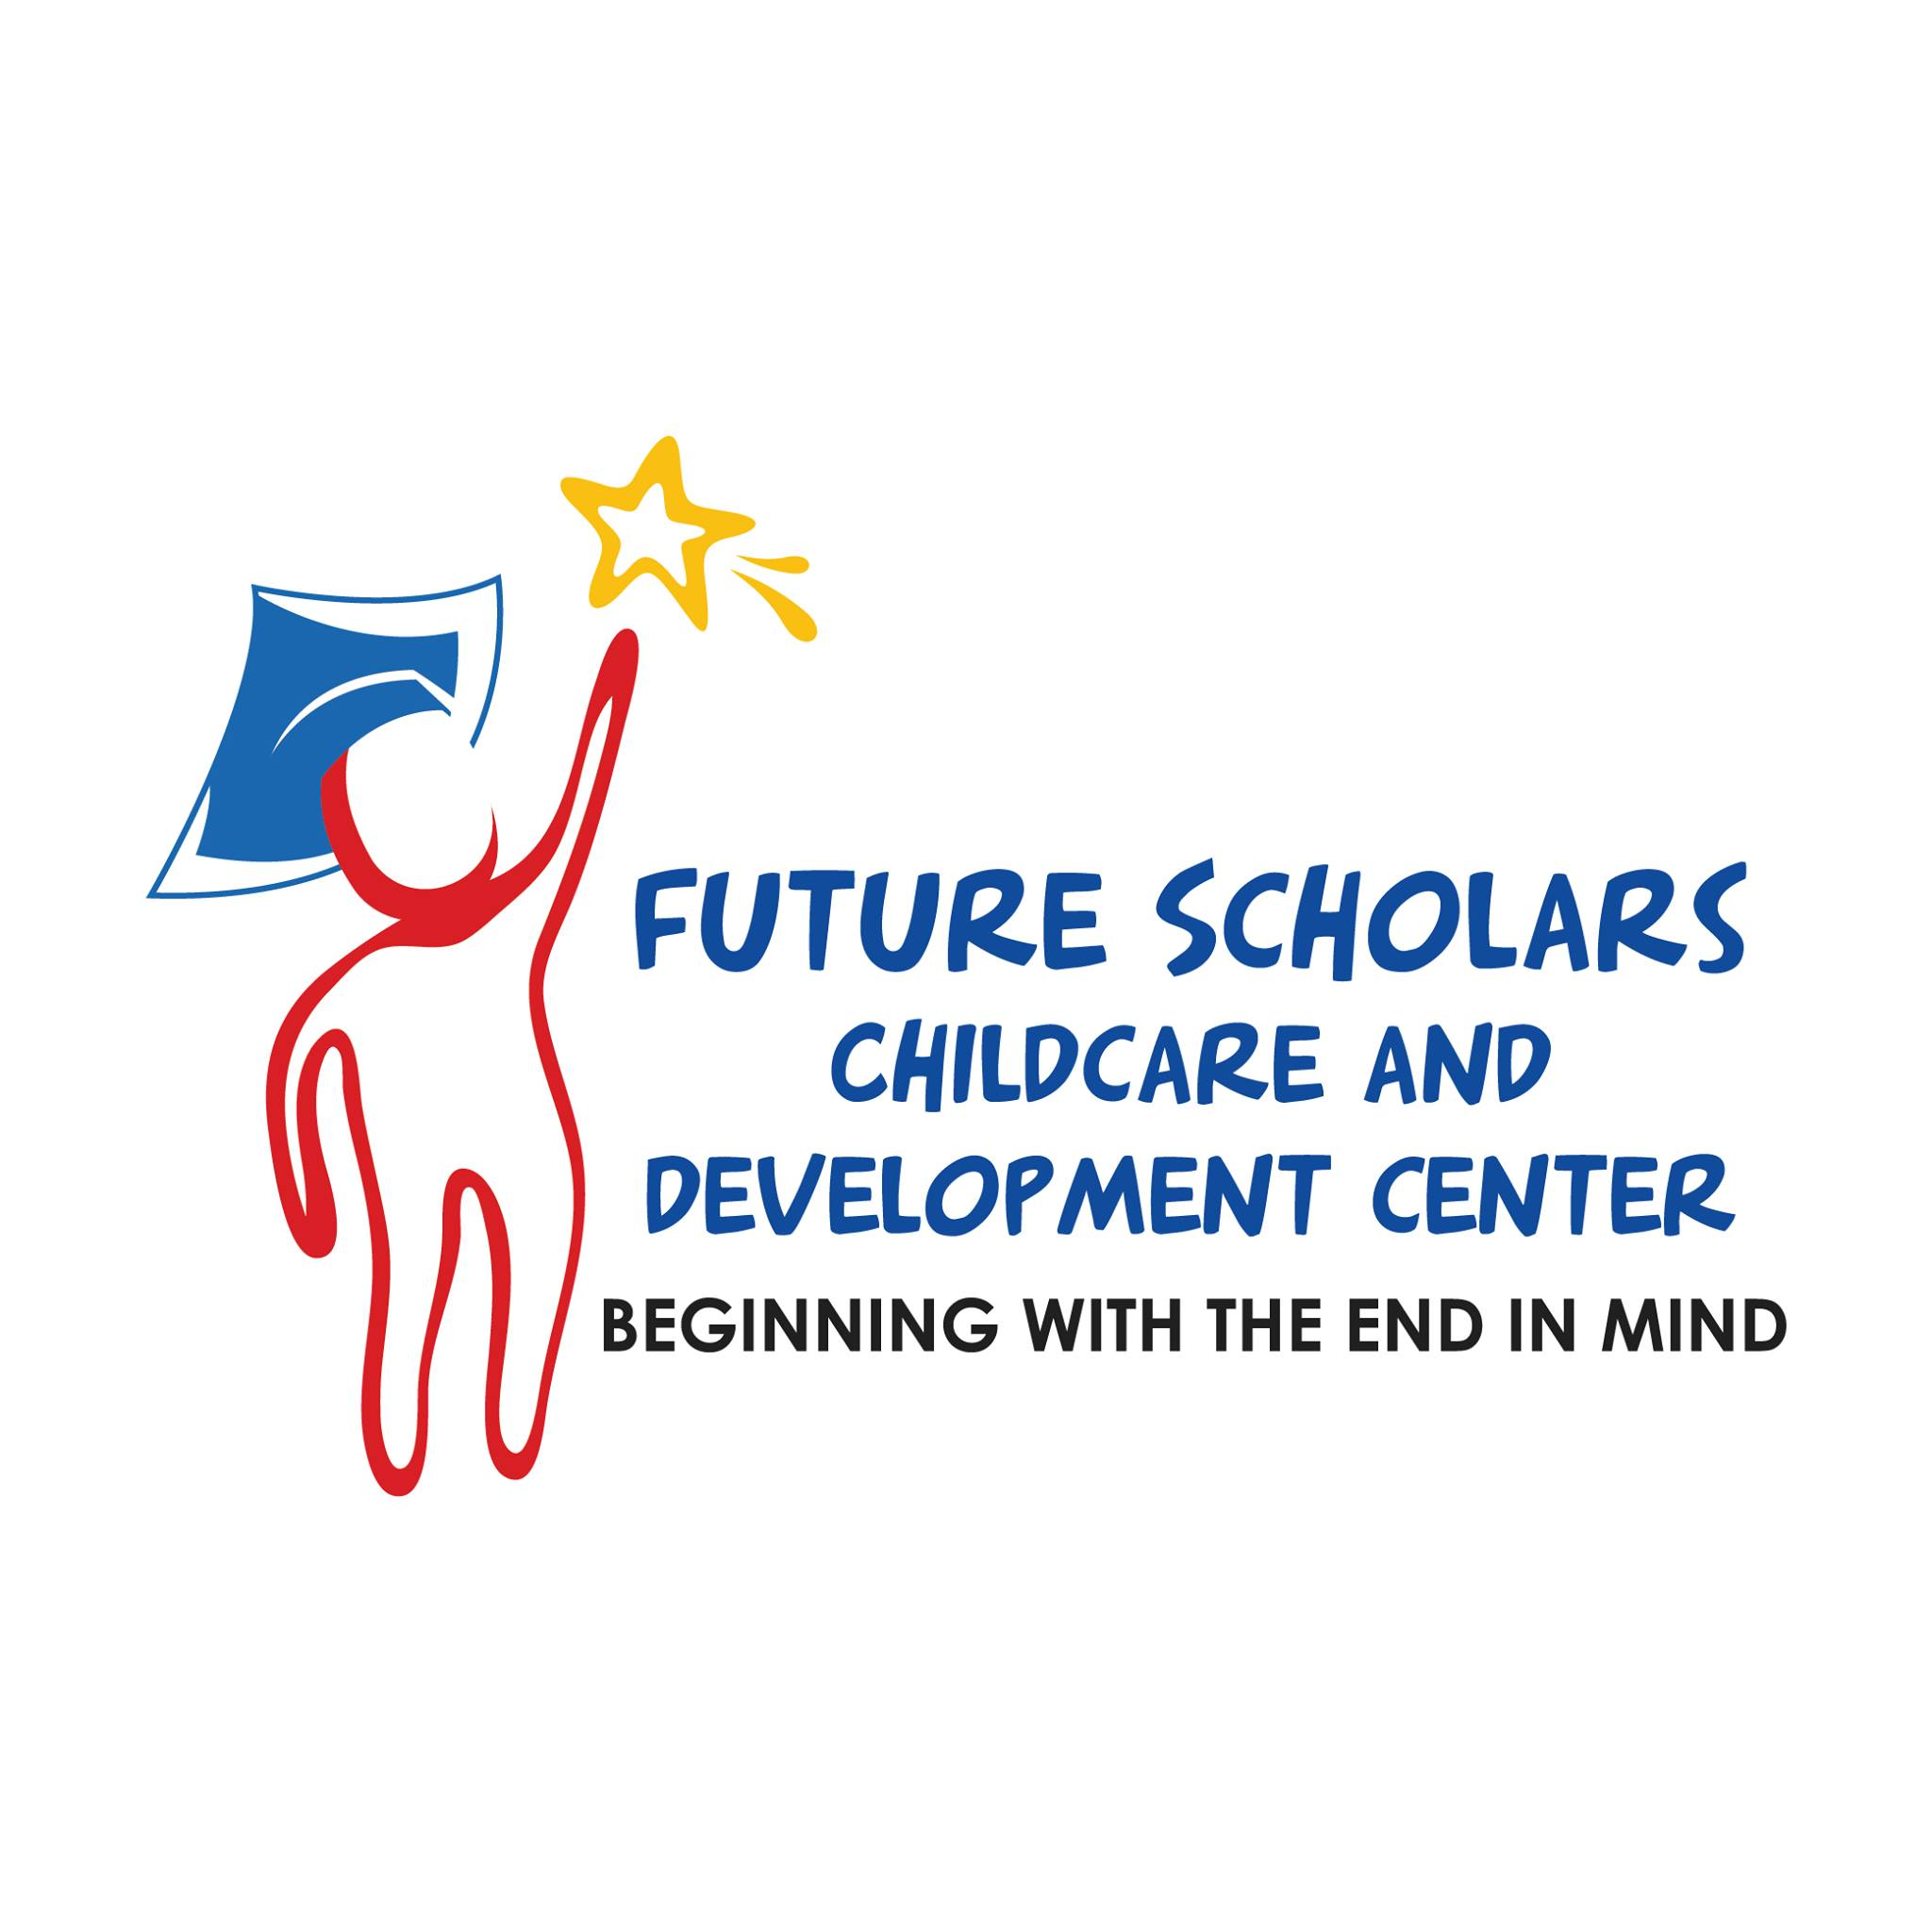 Outline of a child wearing a mortarboard and holding a star in left hand. Text: Future Scholars Childcare and Development Center, Beginning with the End in Mind.